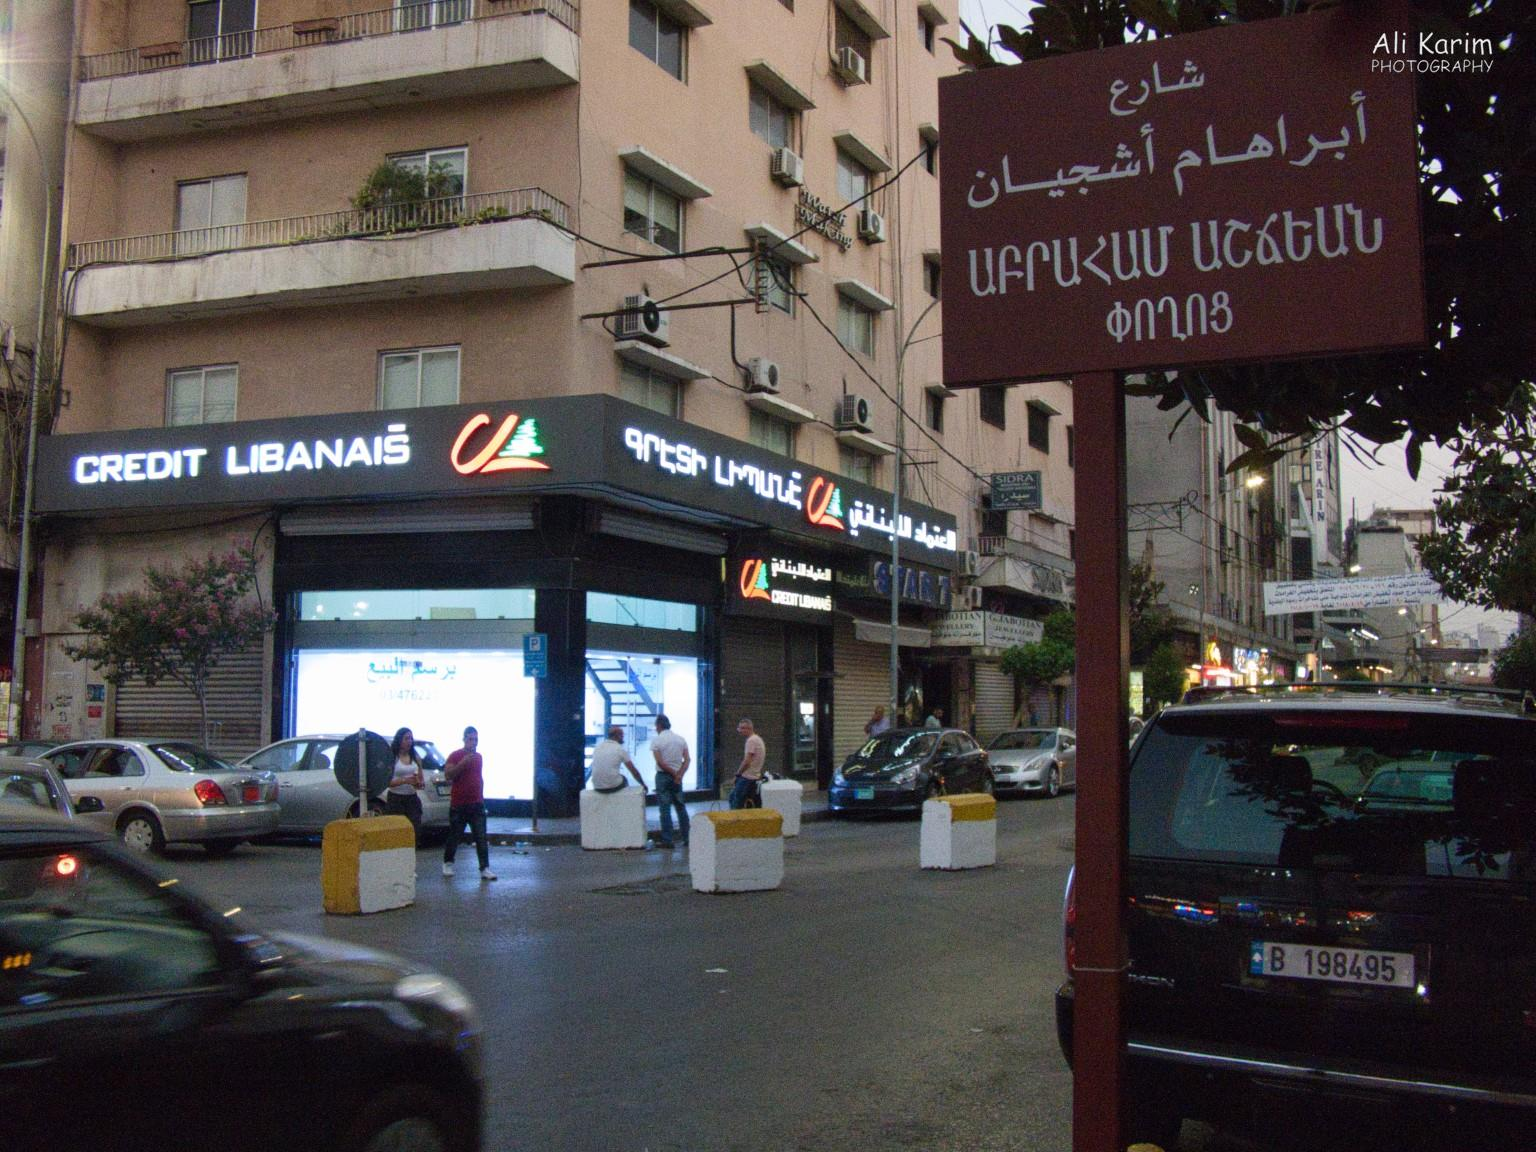 Beirut Bourj Hammound Armenian neighborhood; note the street sign in Arabic and Armenian script